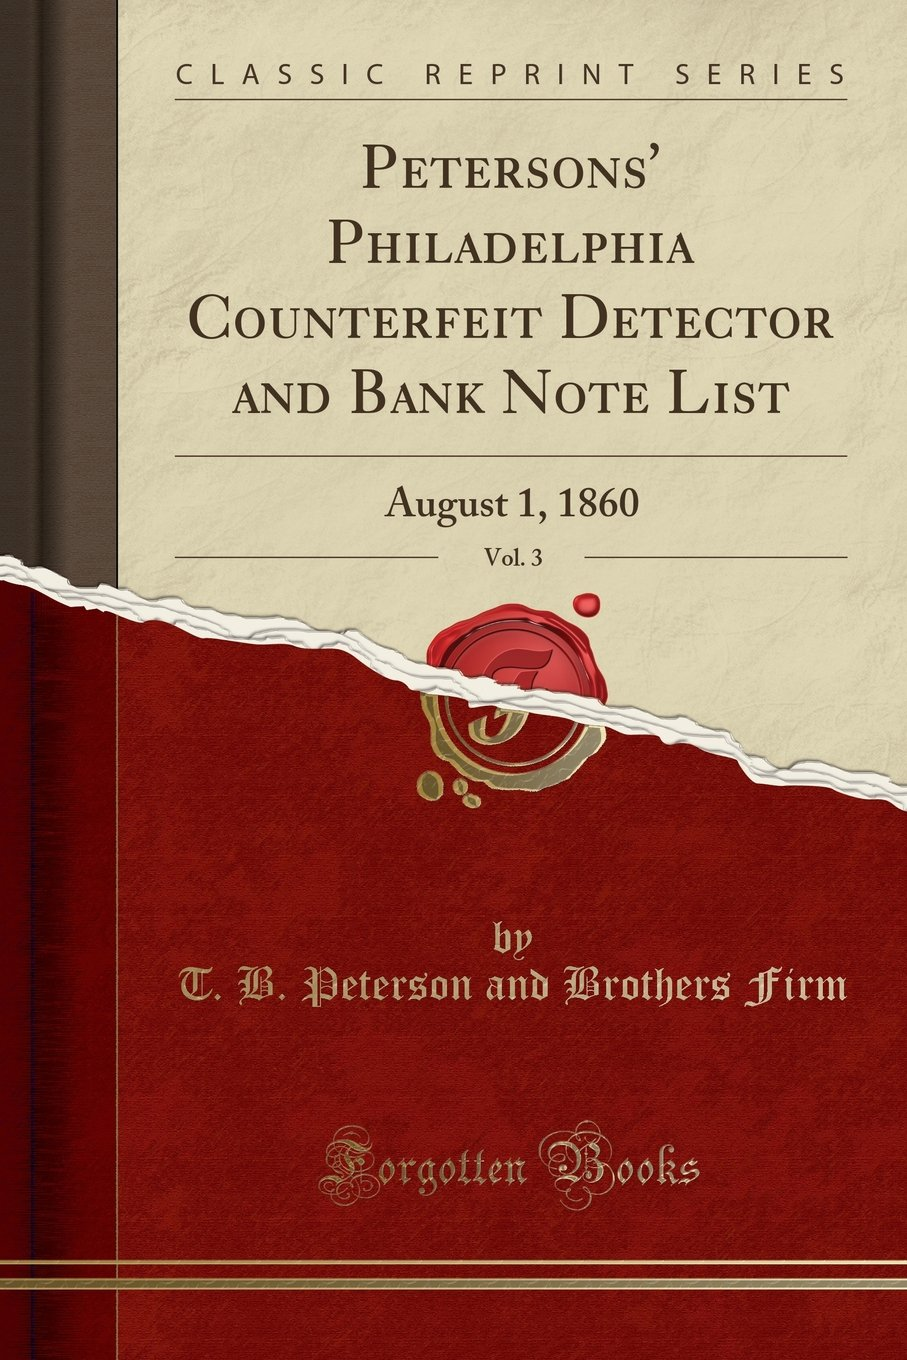 Petersons' Philadelphia Counterfeit Detector and Bank Note List, Vol. 3: August 1, 1860 (Classic Reprint) PDF